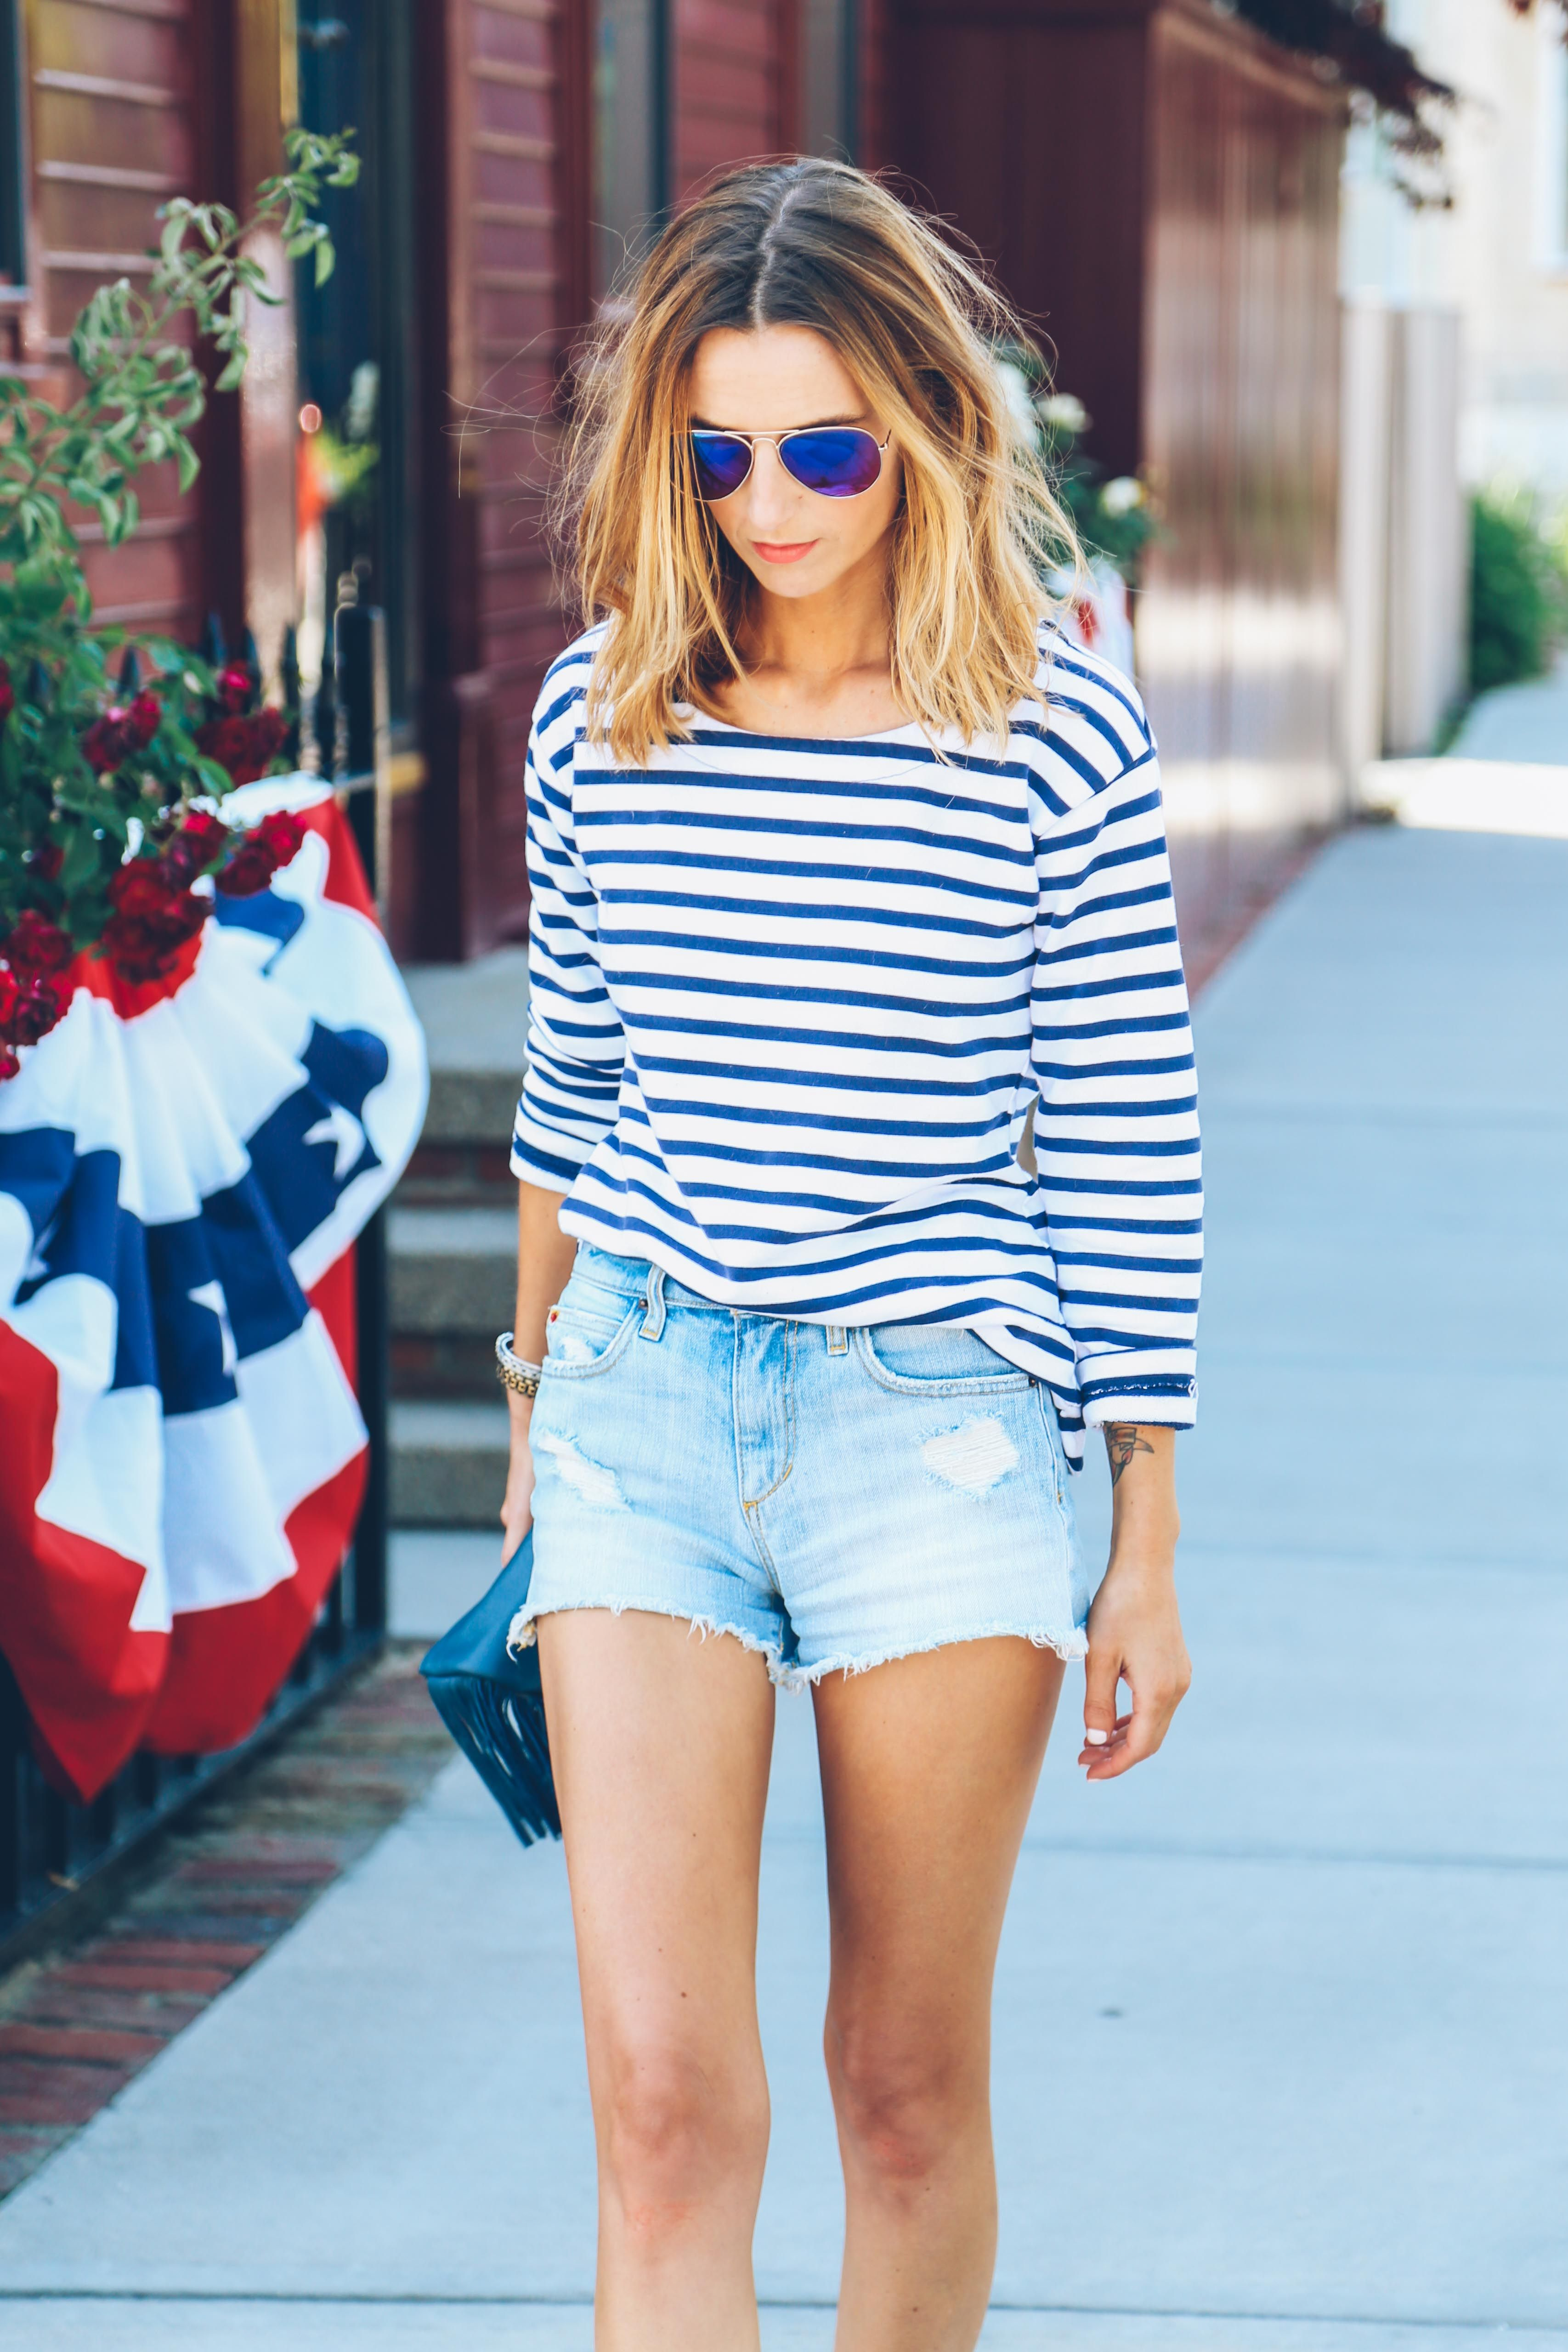 4th of July Outfit Ideas: Striped Shirt and Cut-offs ...